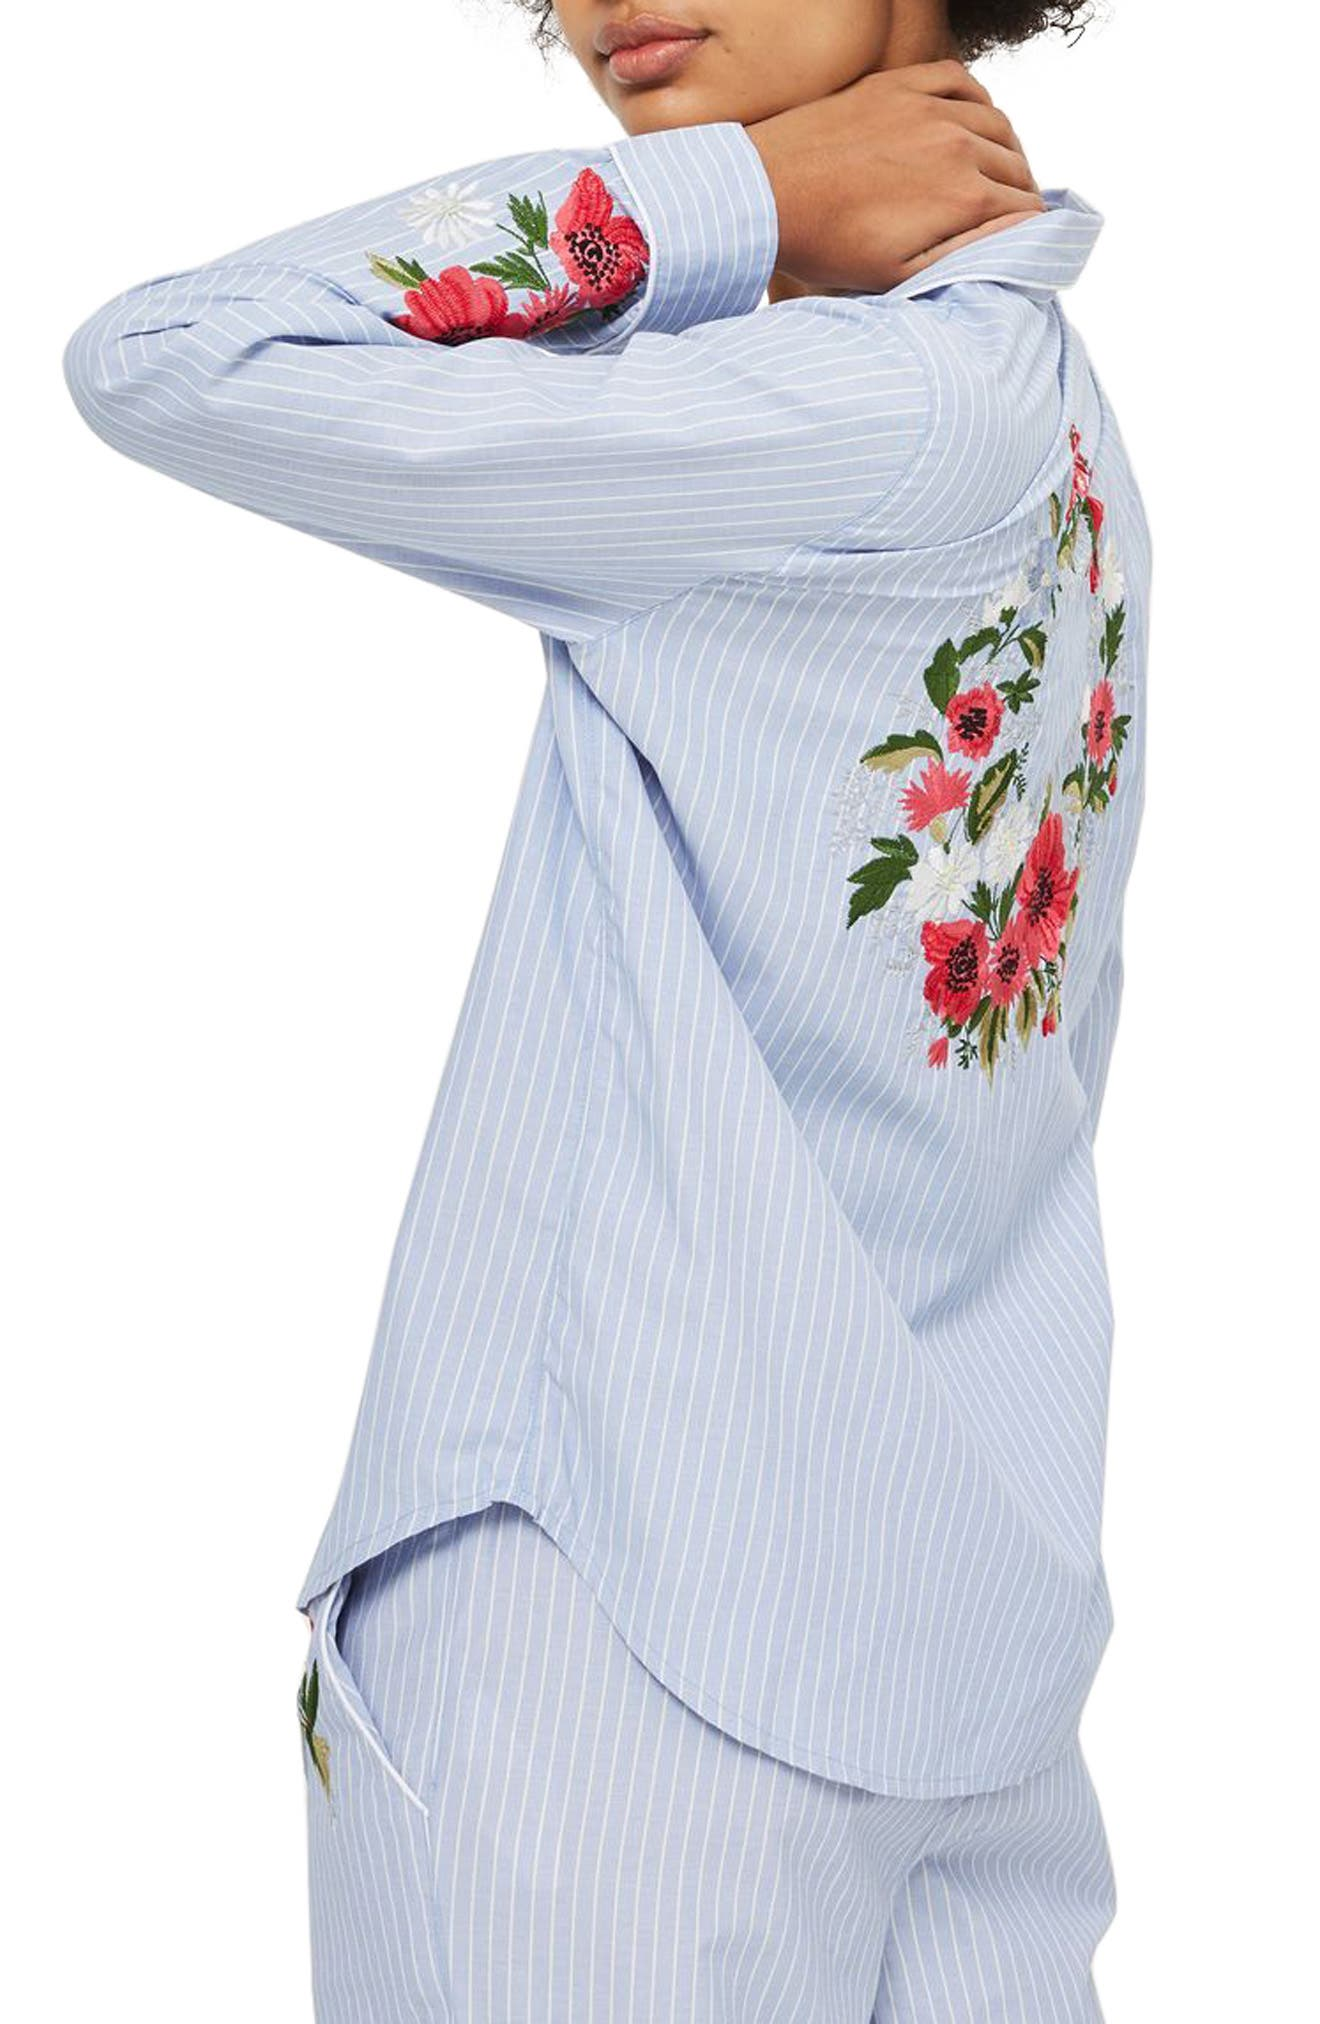 Floral Embroidered Stripe Nightshirt,                             Alternate thumbnail 2, color,